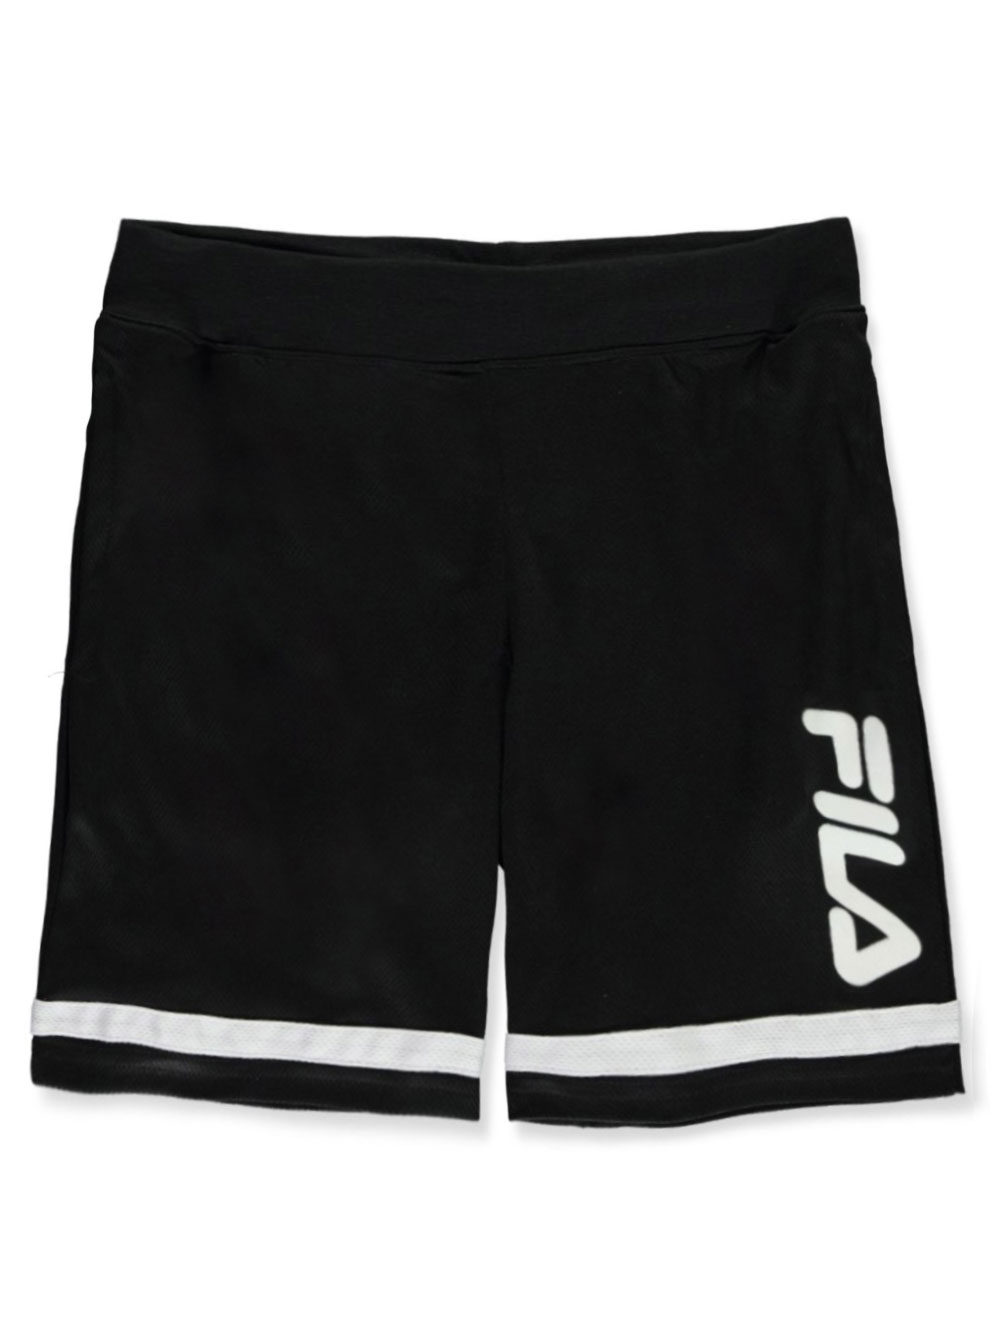 Shorts Mesh Construction